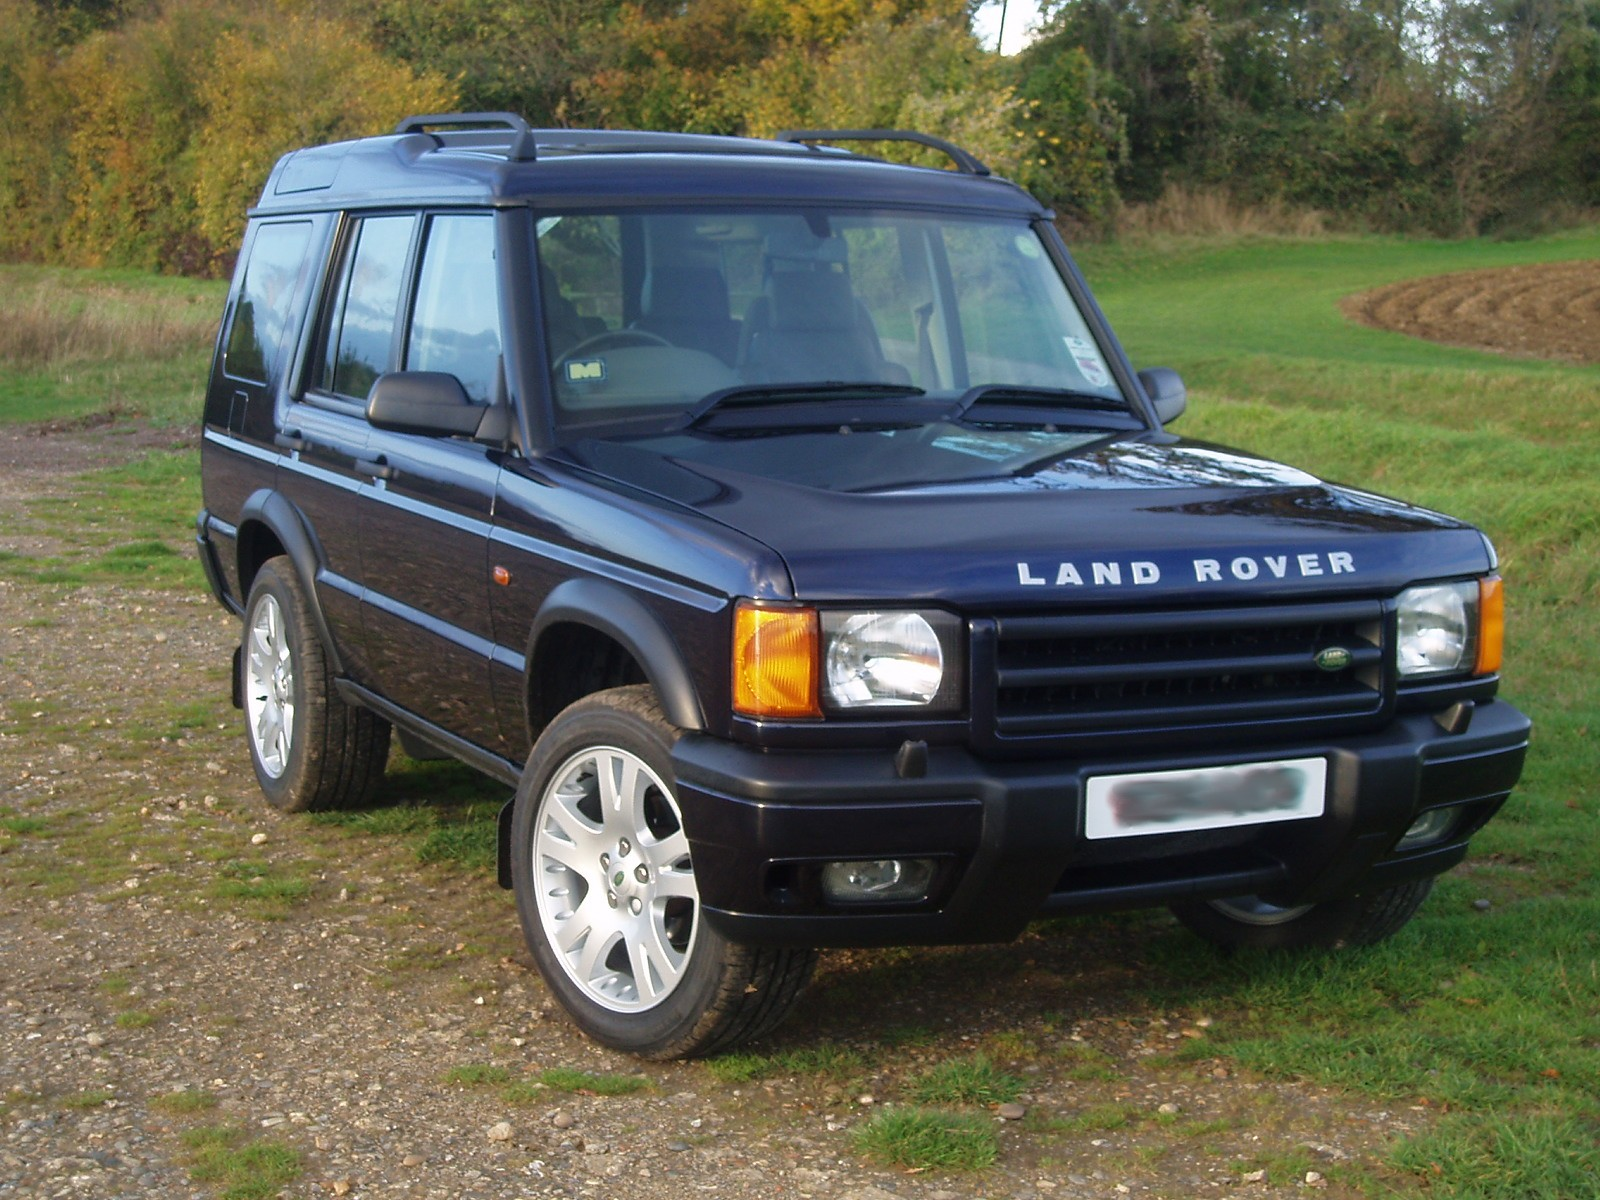 Land-rover discovery photo - 5